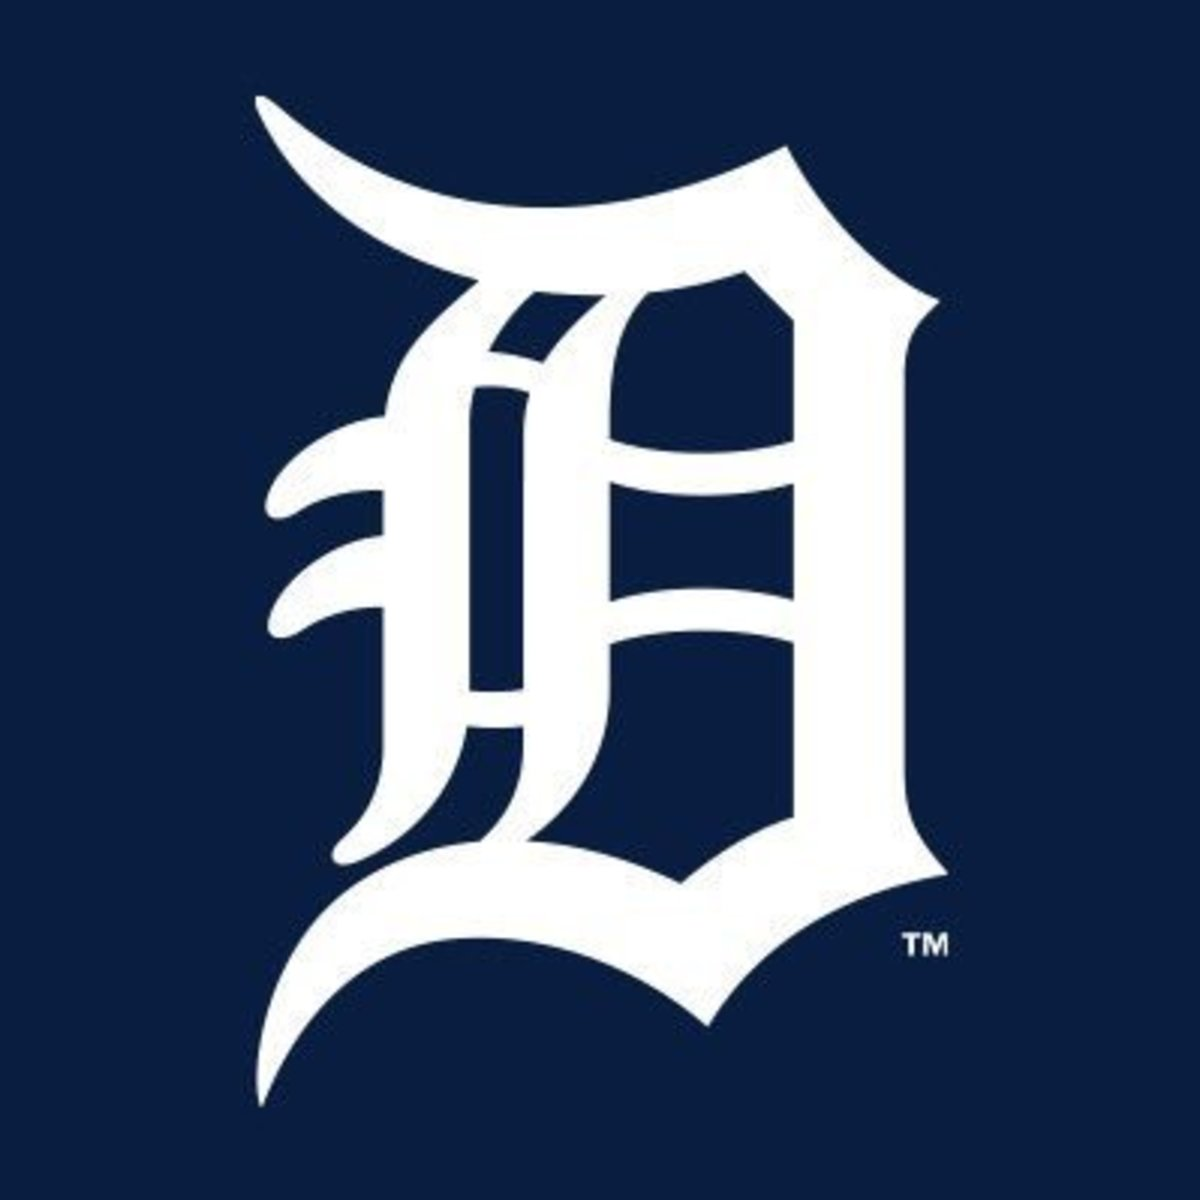 In 1935, the Detroit Tigers defeated the Chicago Cubs, four games to two, to win their first World Series.